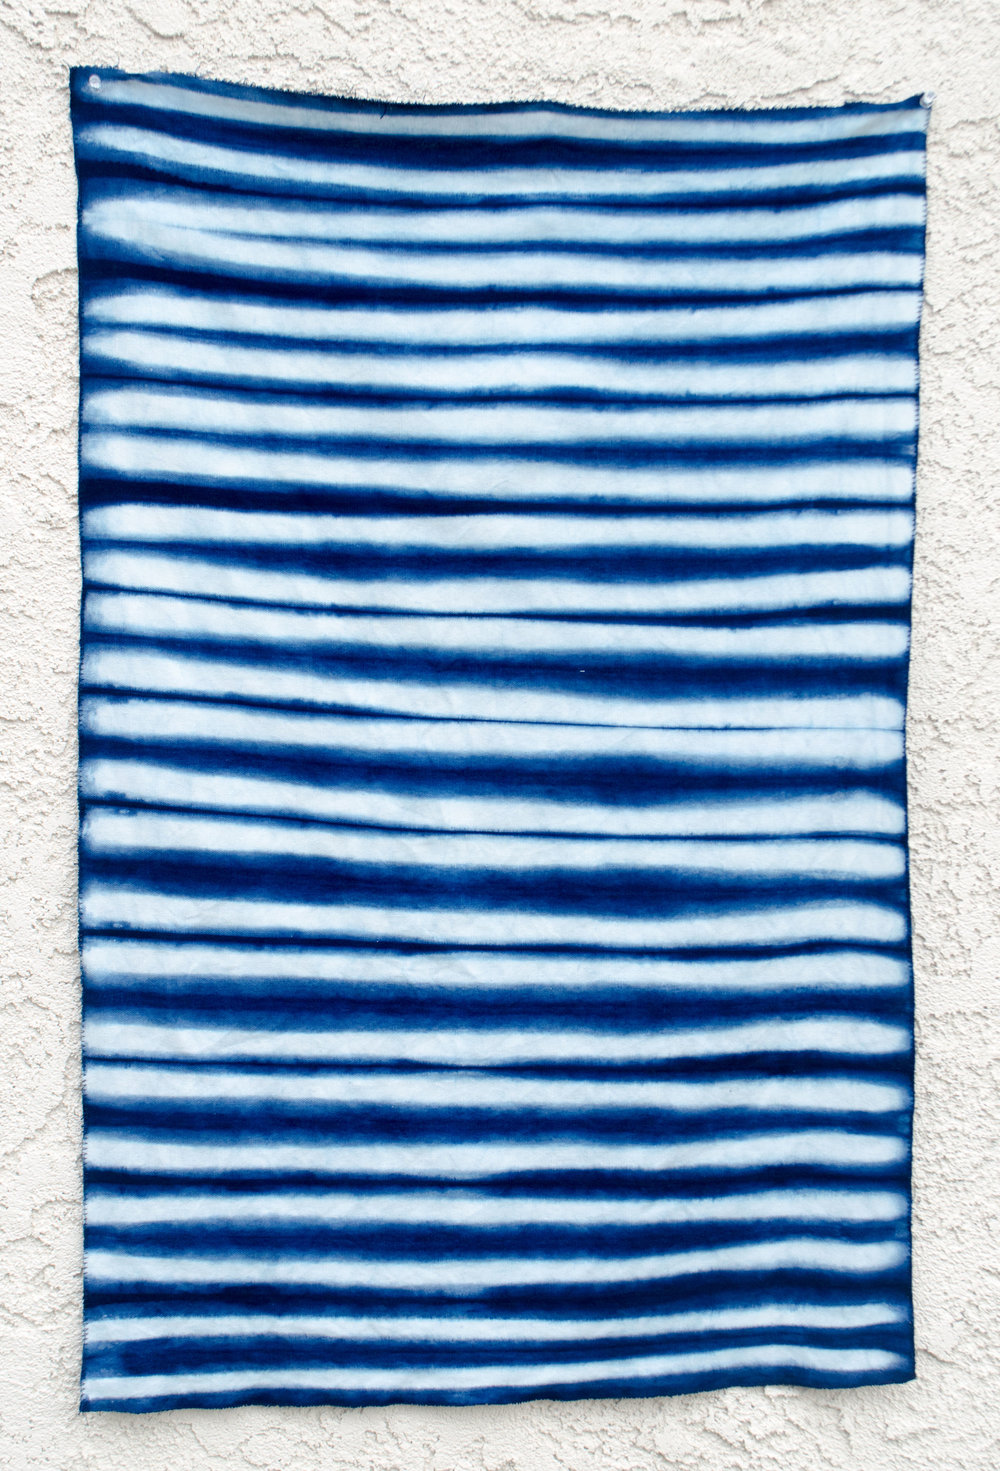 Shibori dyed stripe fat quarter for quilters by Carlyn Clark